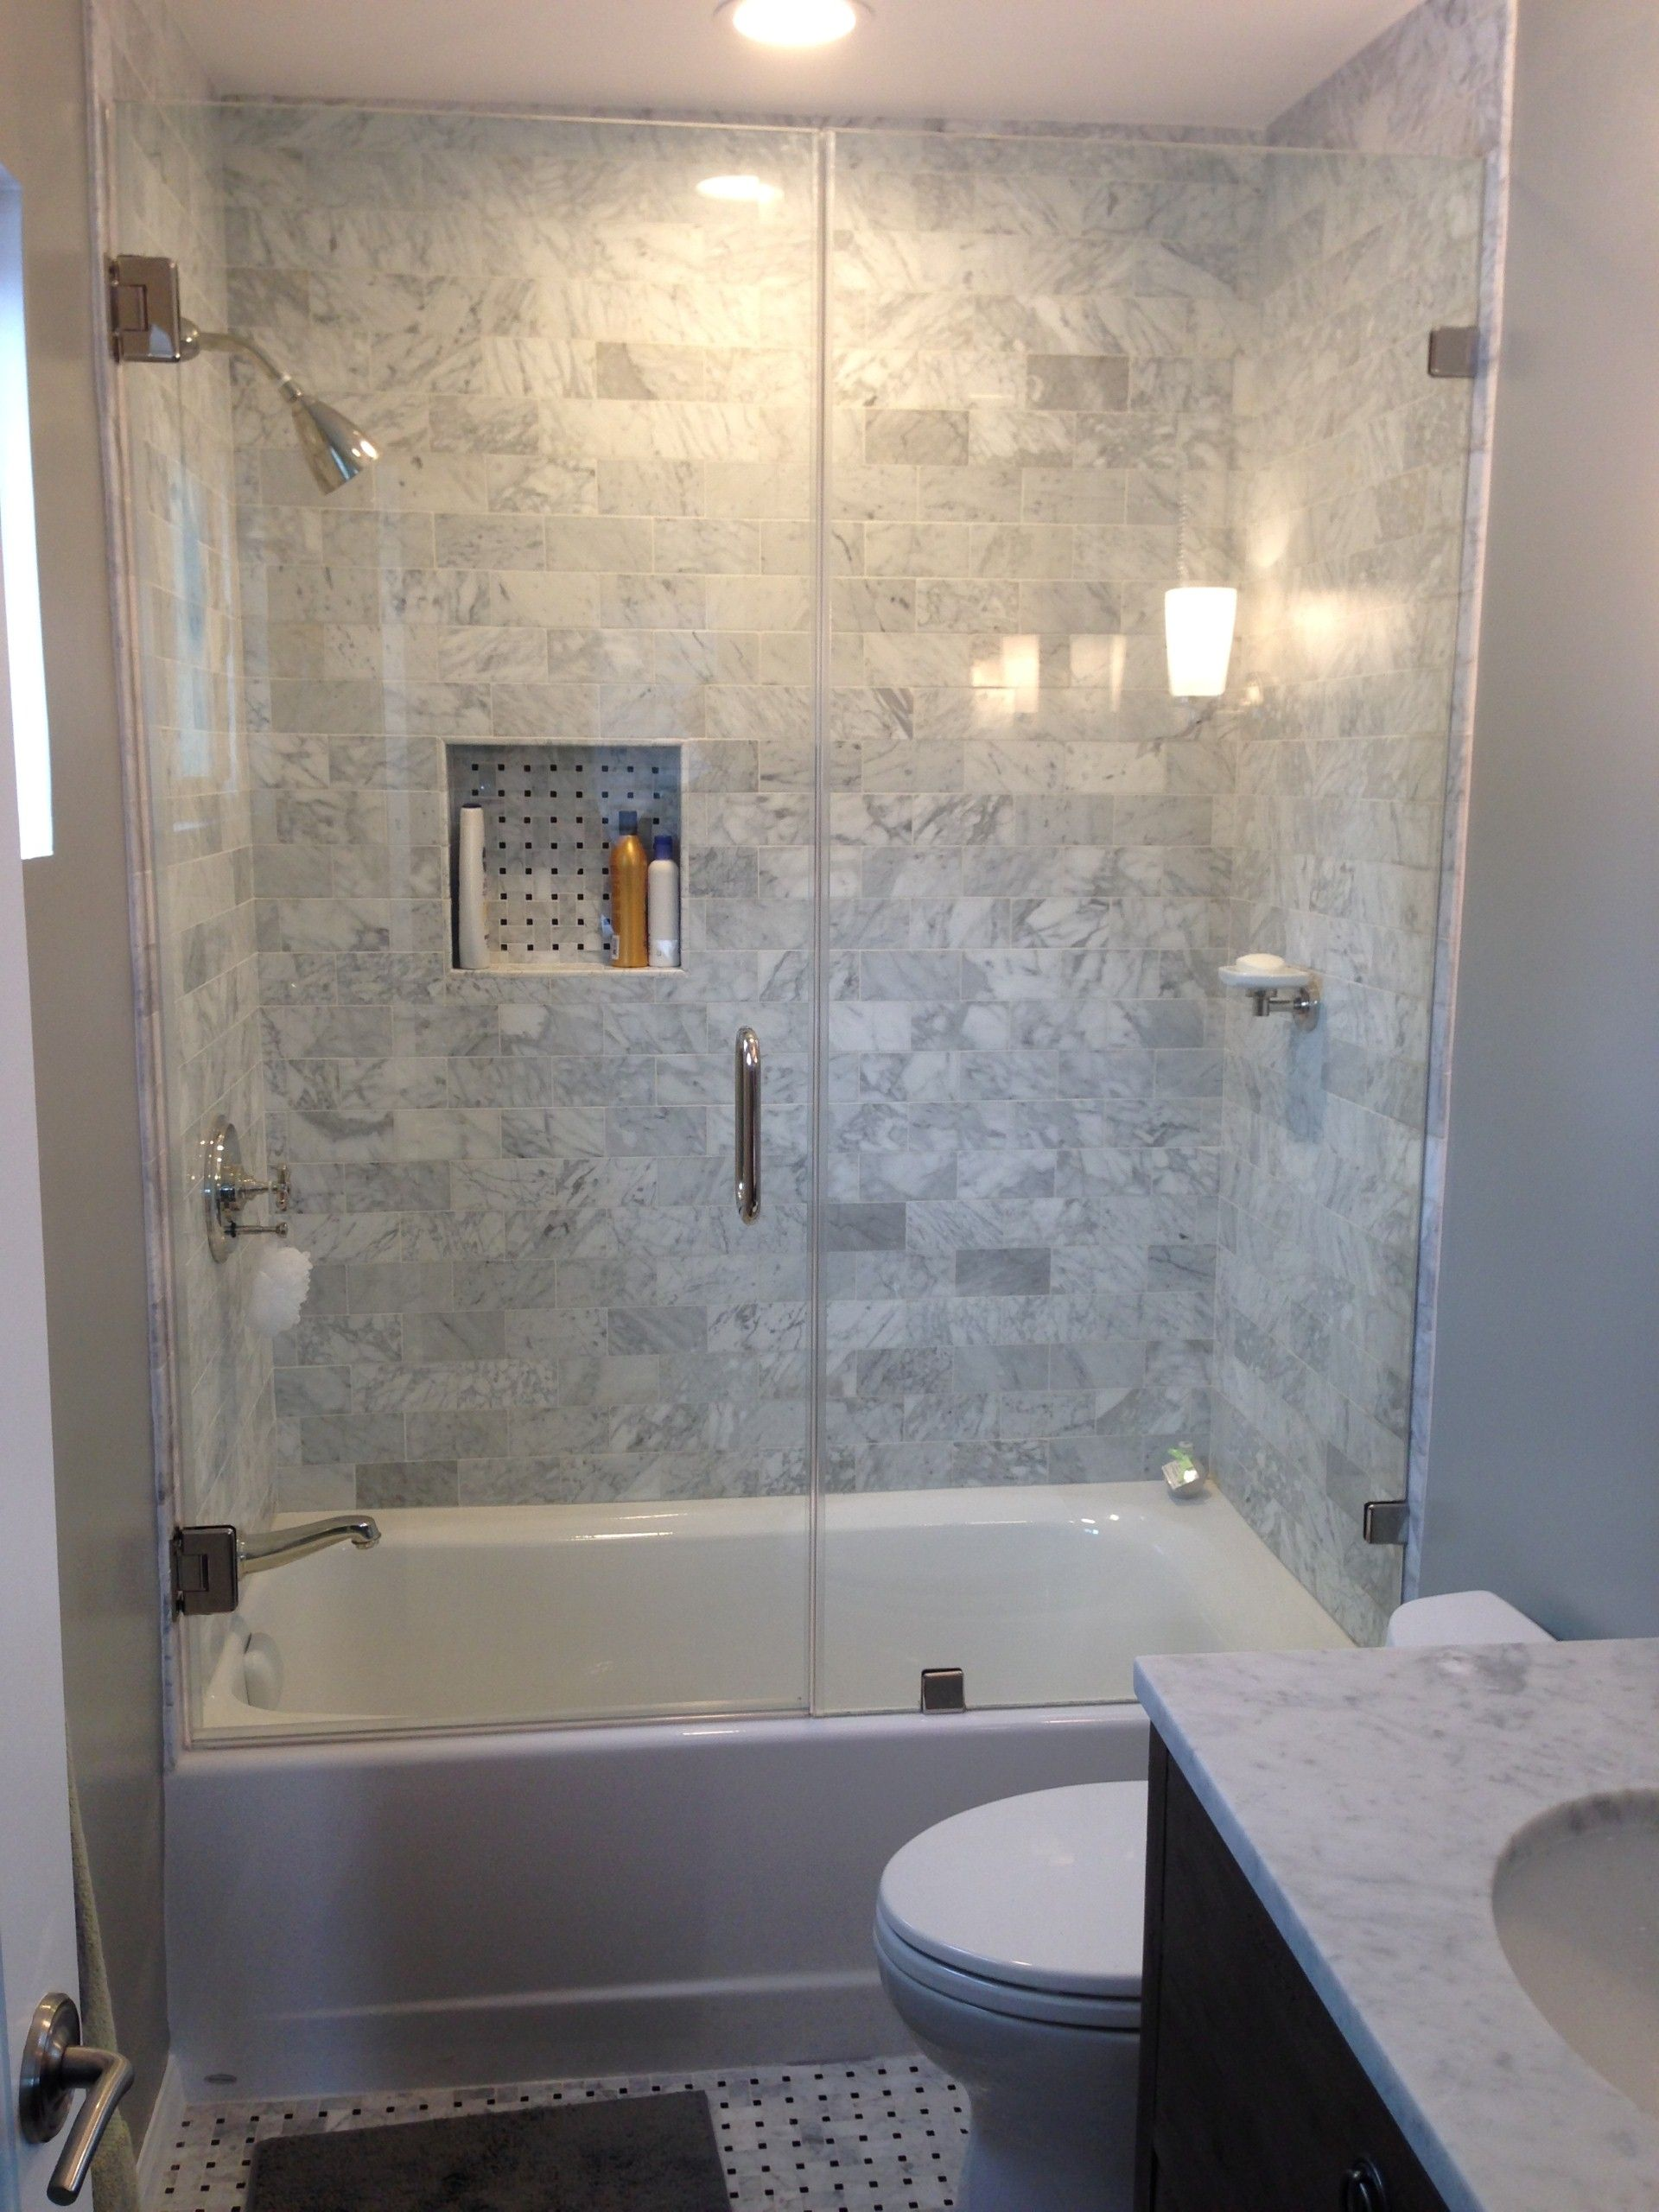 Bathtub Shower Combo Can Work With An Endless Array Of Design Styles And Is Perfect For Those A Smaller Bathroom Or Younger